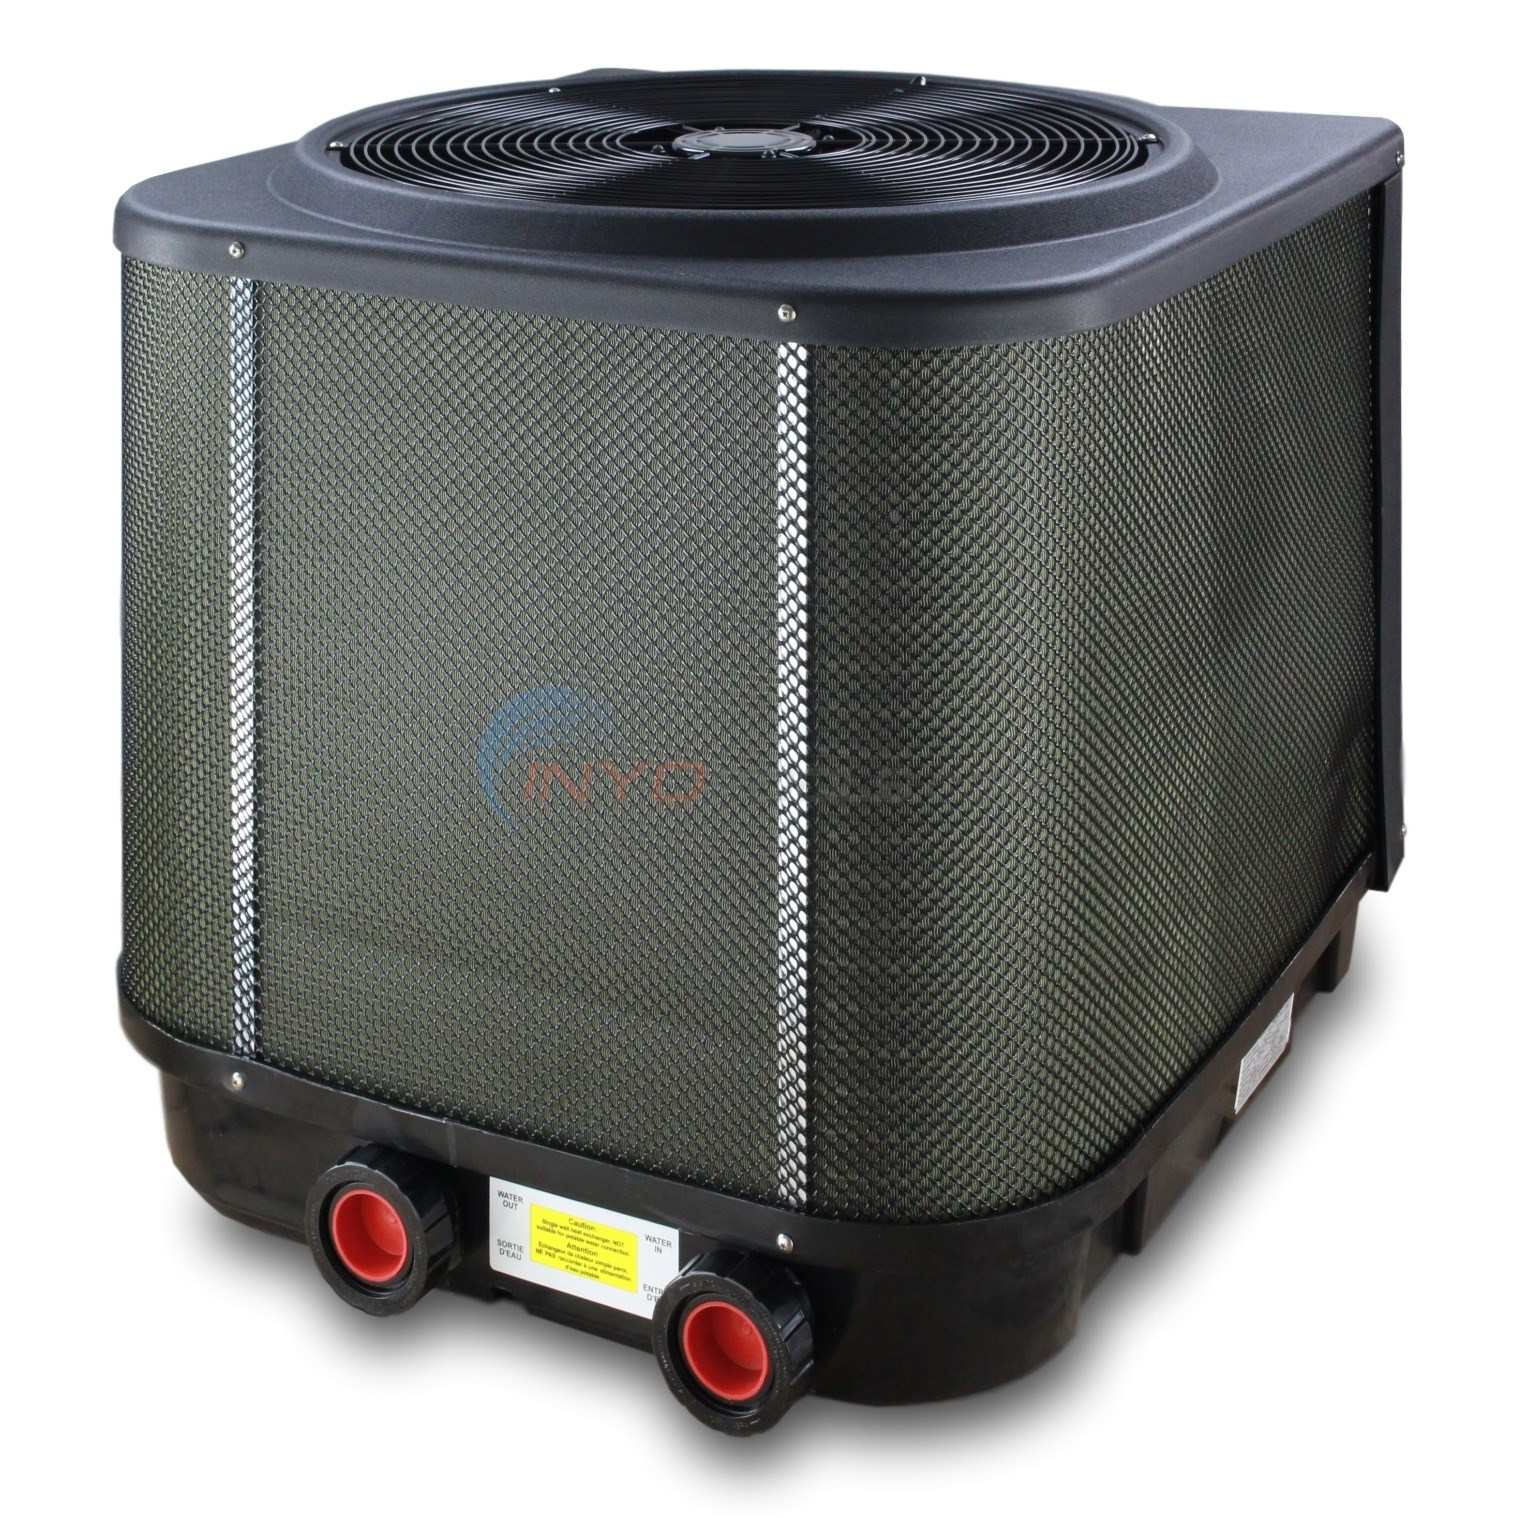 Hayward Heat Pro Heat Pump 50k BTU Digital Display Above Ground Pool - HP50TA